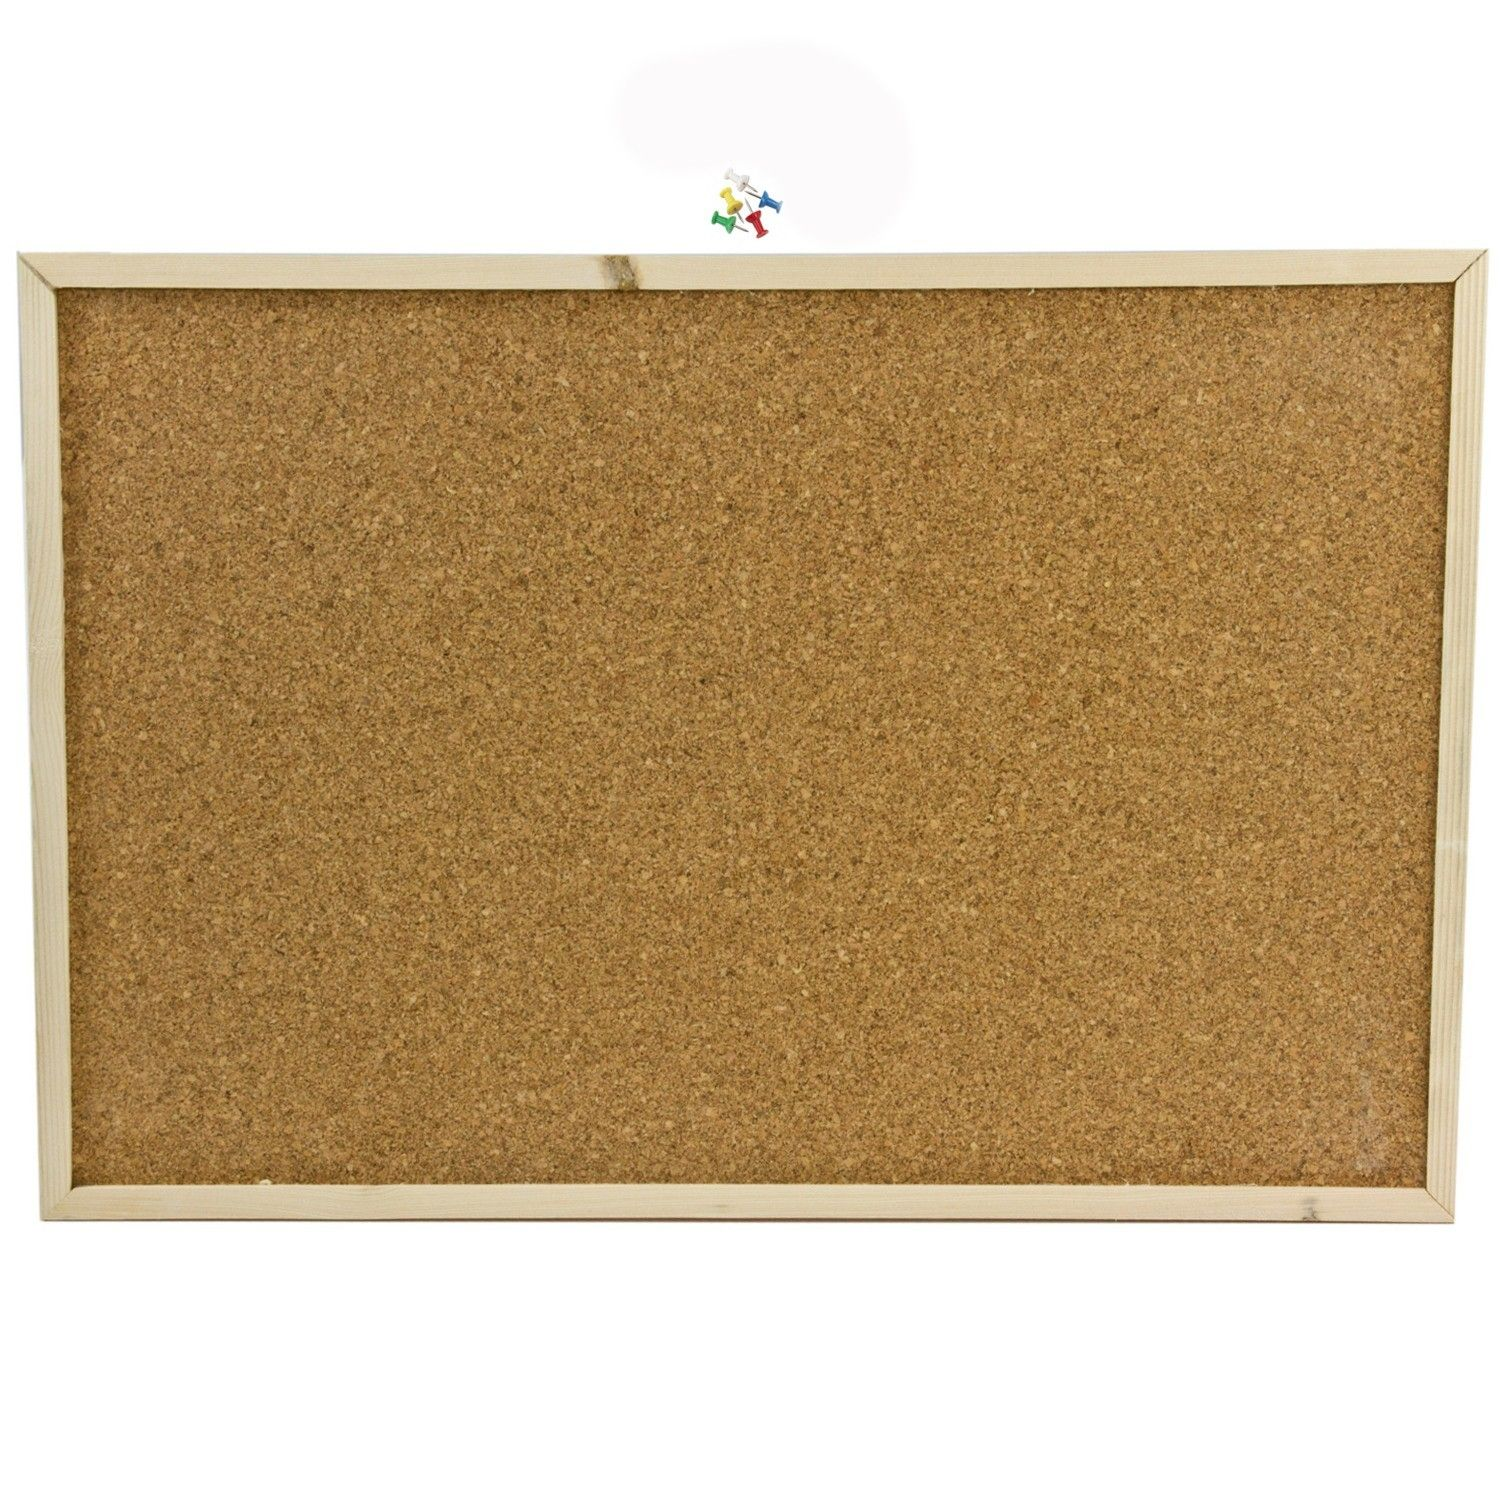 Cork Memo Board (With Images)